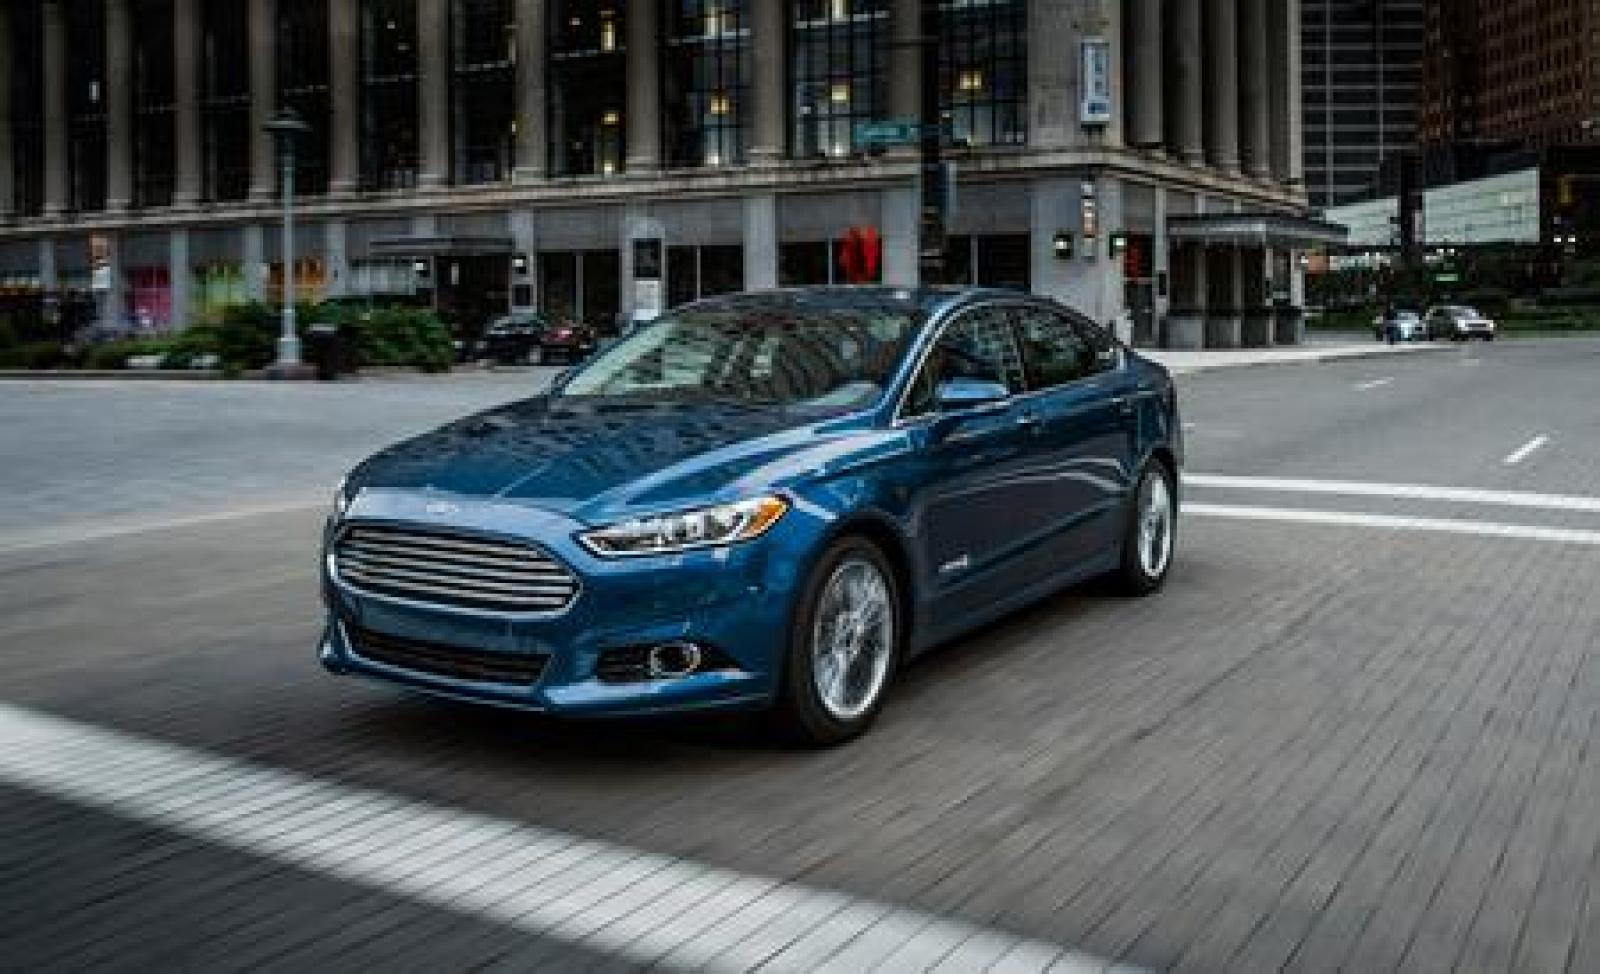 2015 ford fusion hybrid information and photos zombiedrive. Black Bedroom Furniture Sets. Home Design Ideas